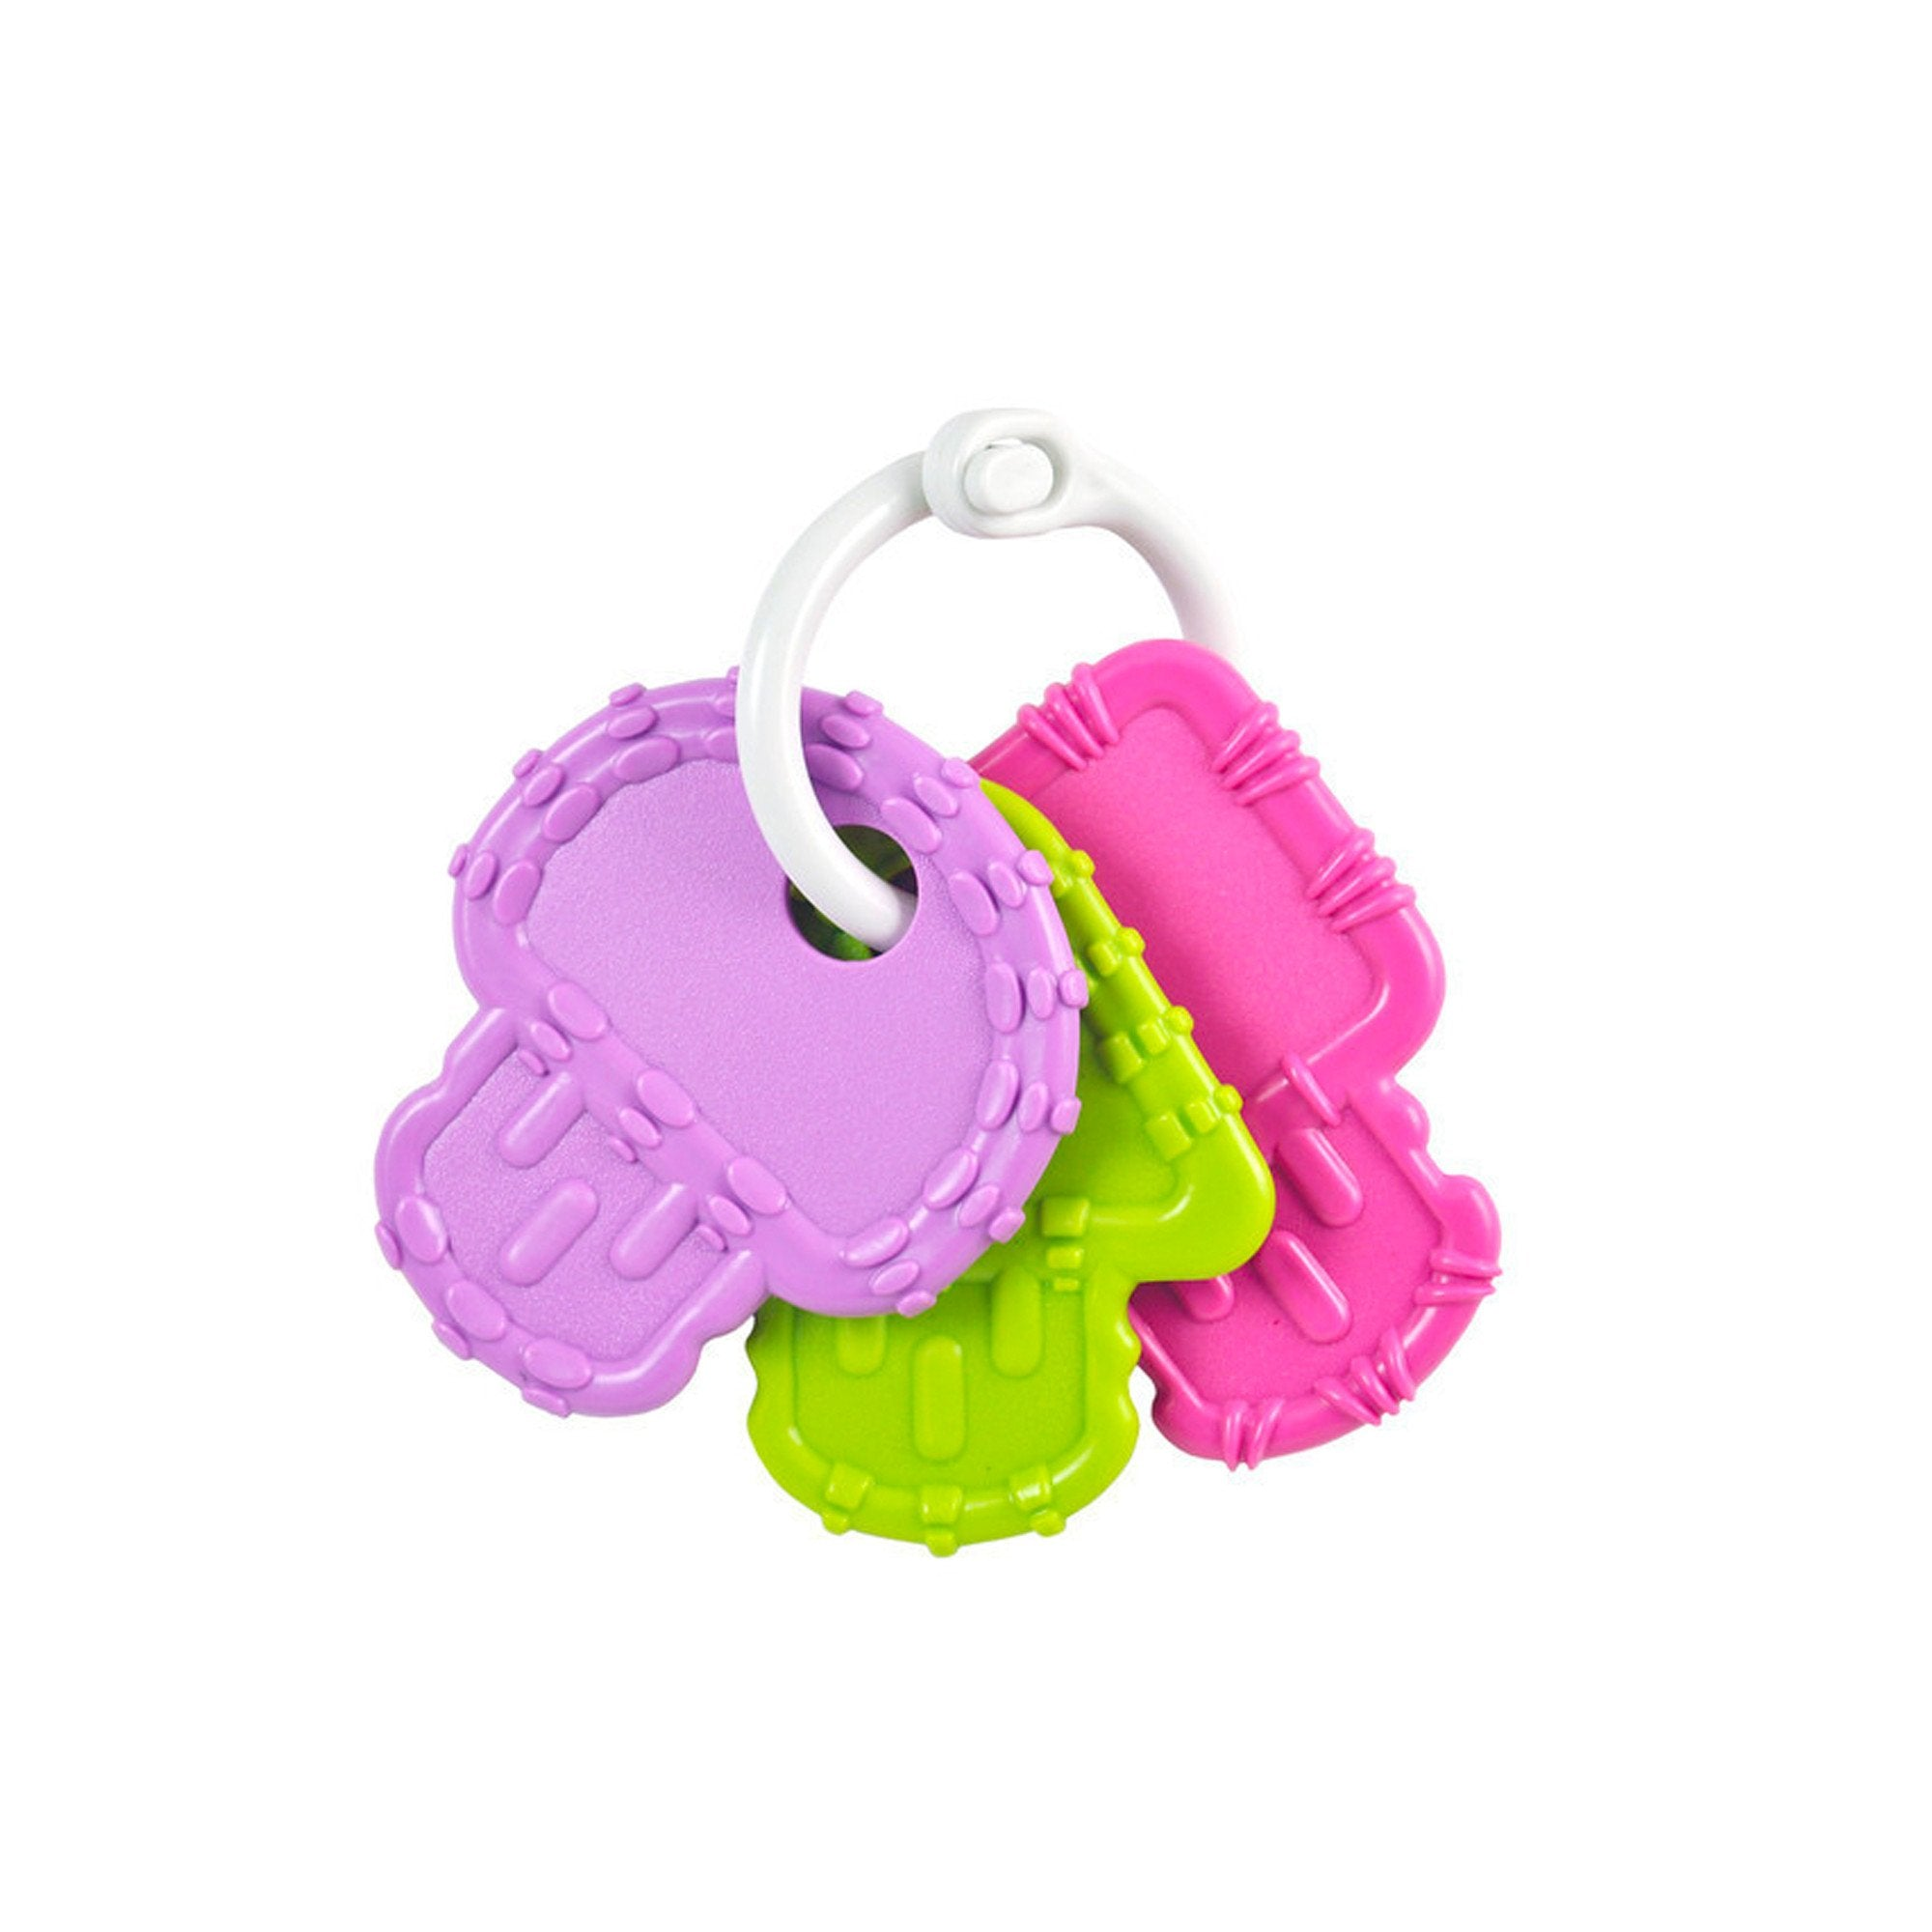 Replay Teether Key Set - BPA Free Recycled Plastic